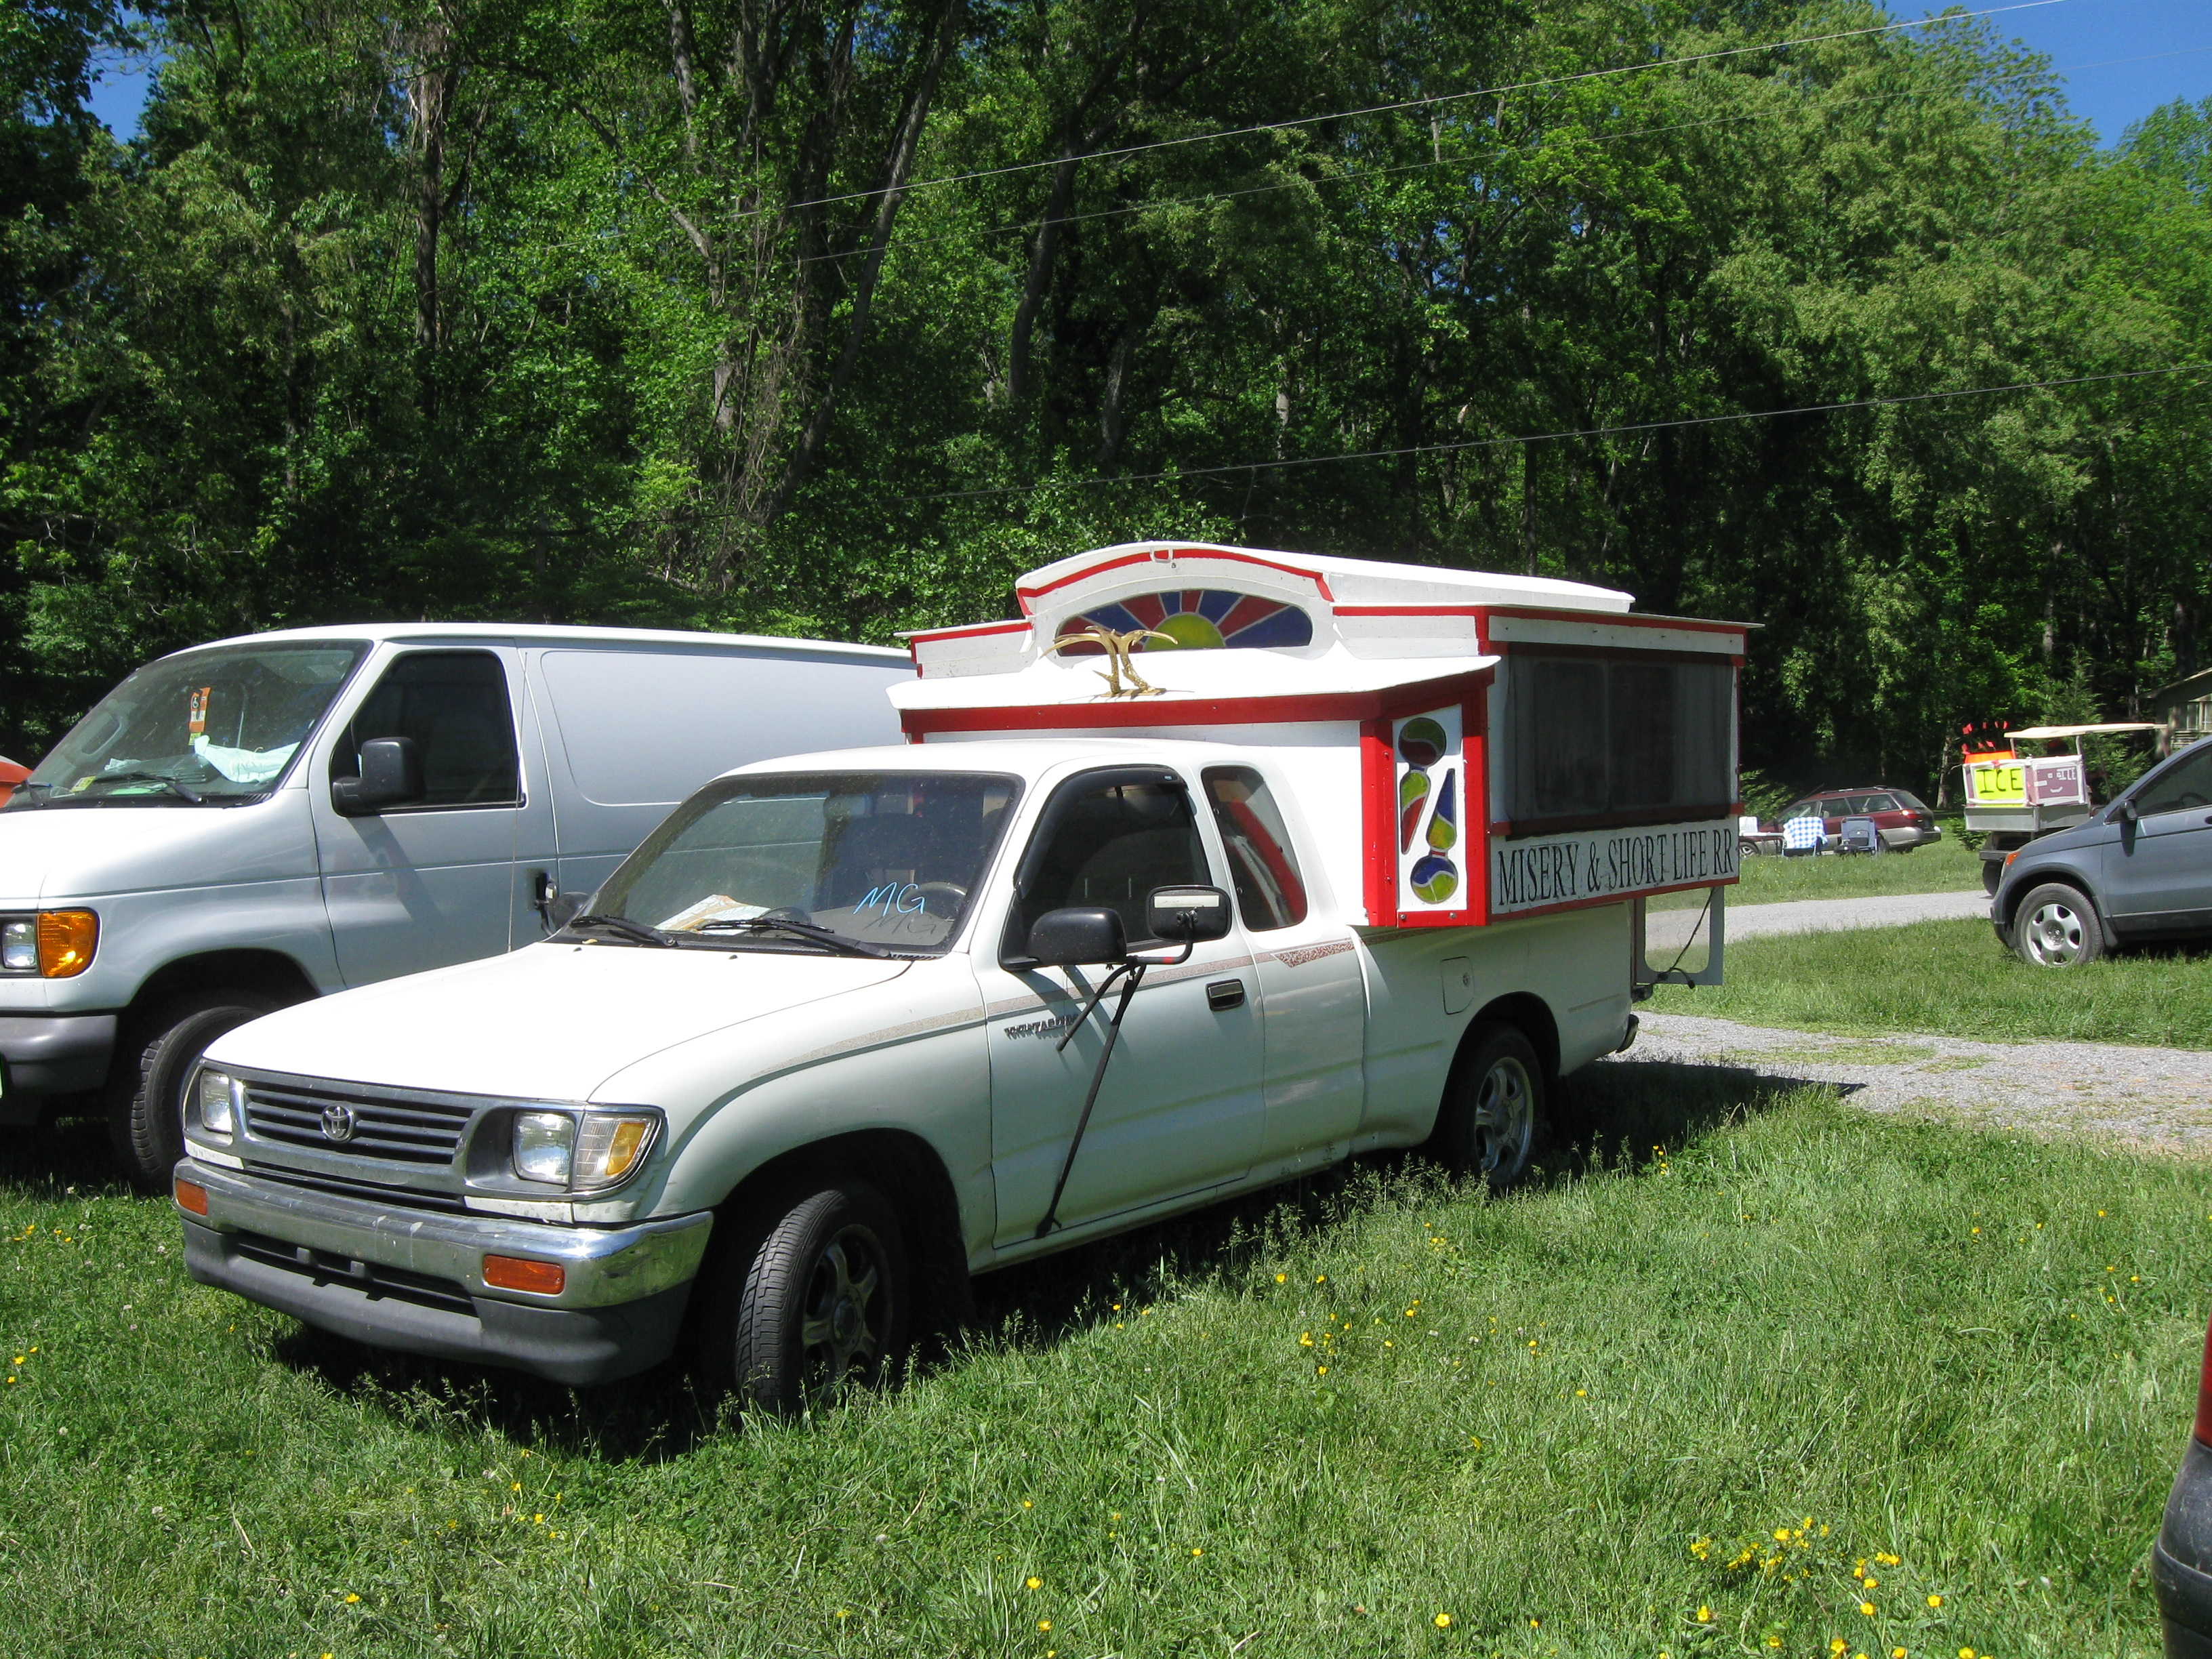 Picture of Plywood Shack Pickup Camper